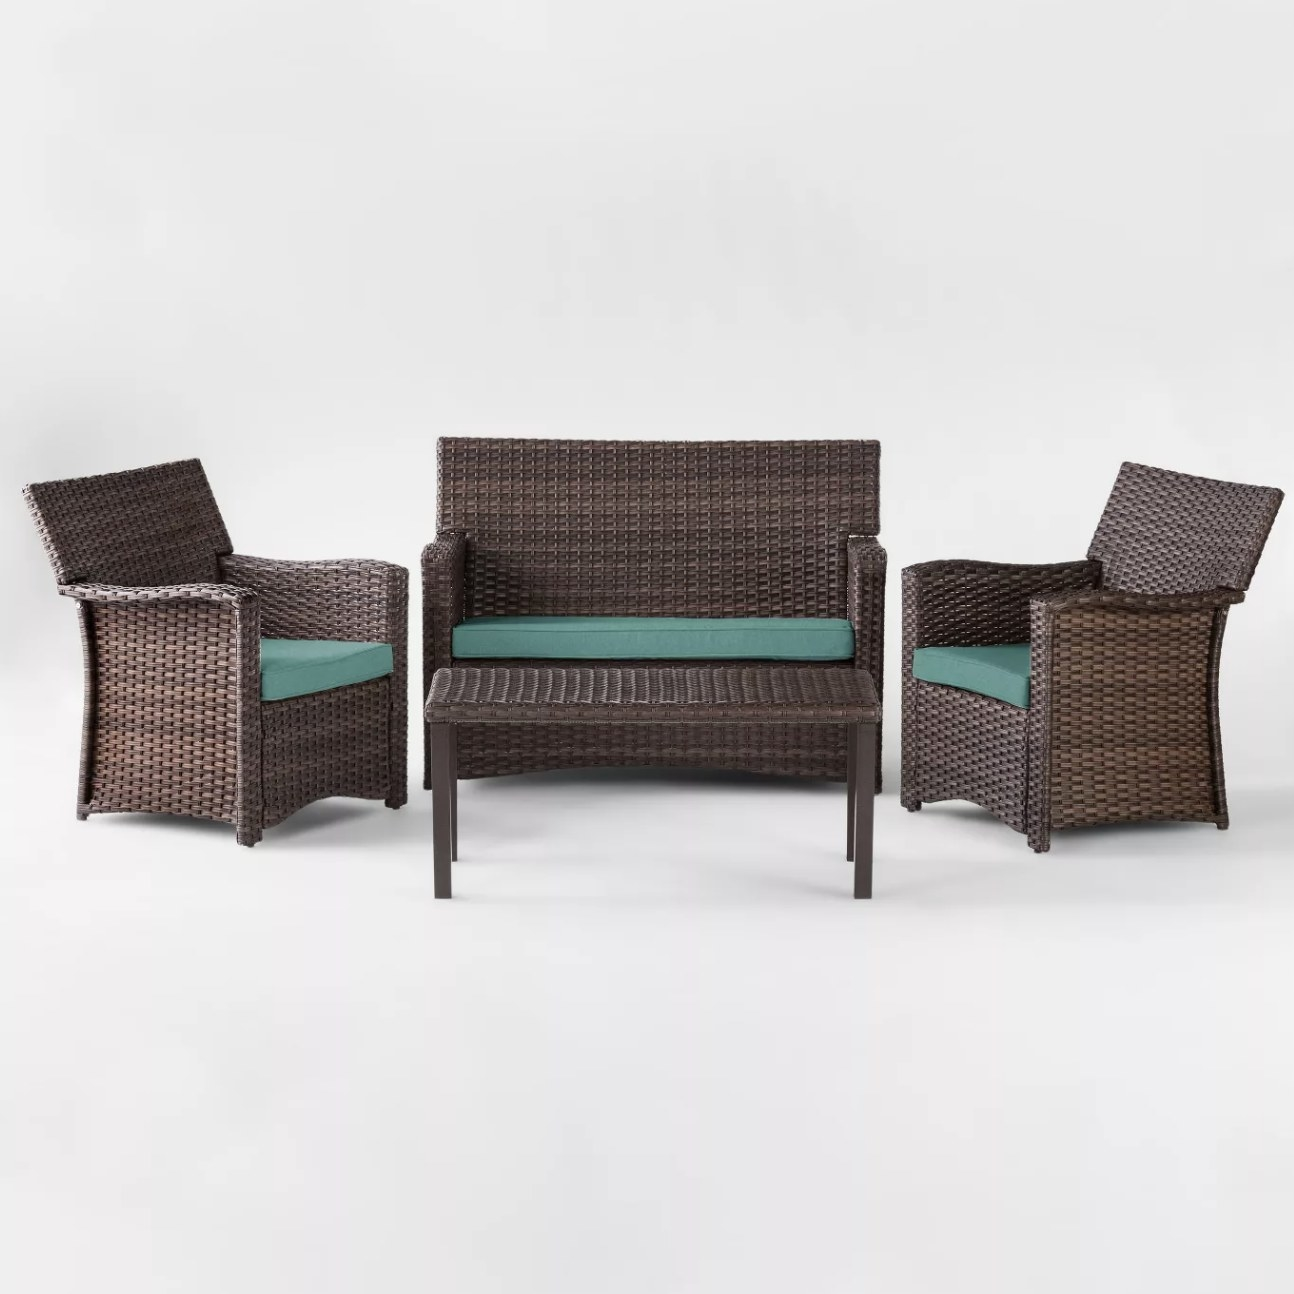 A four-piece dark wood-colored wicker set with three seats and a coffee table and blue cushions